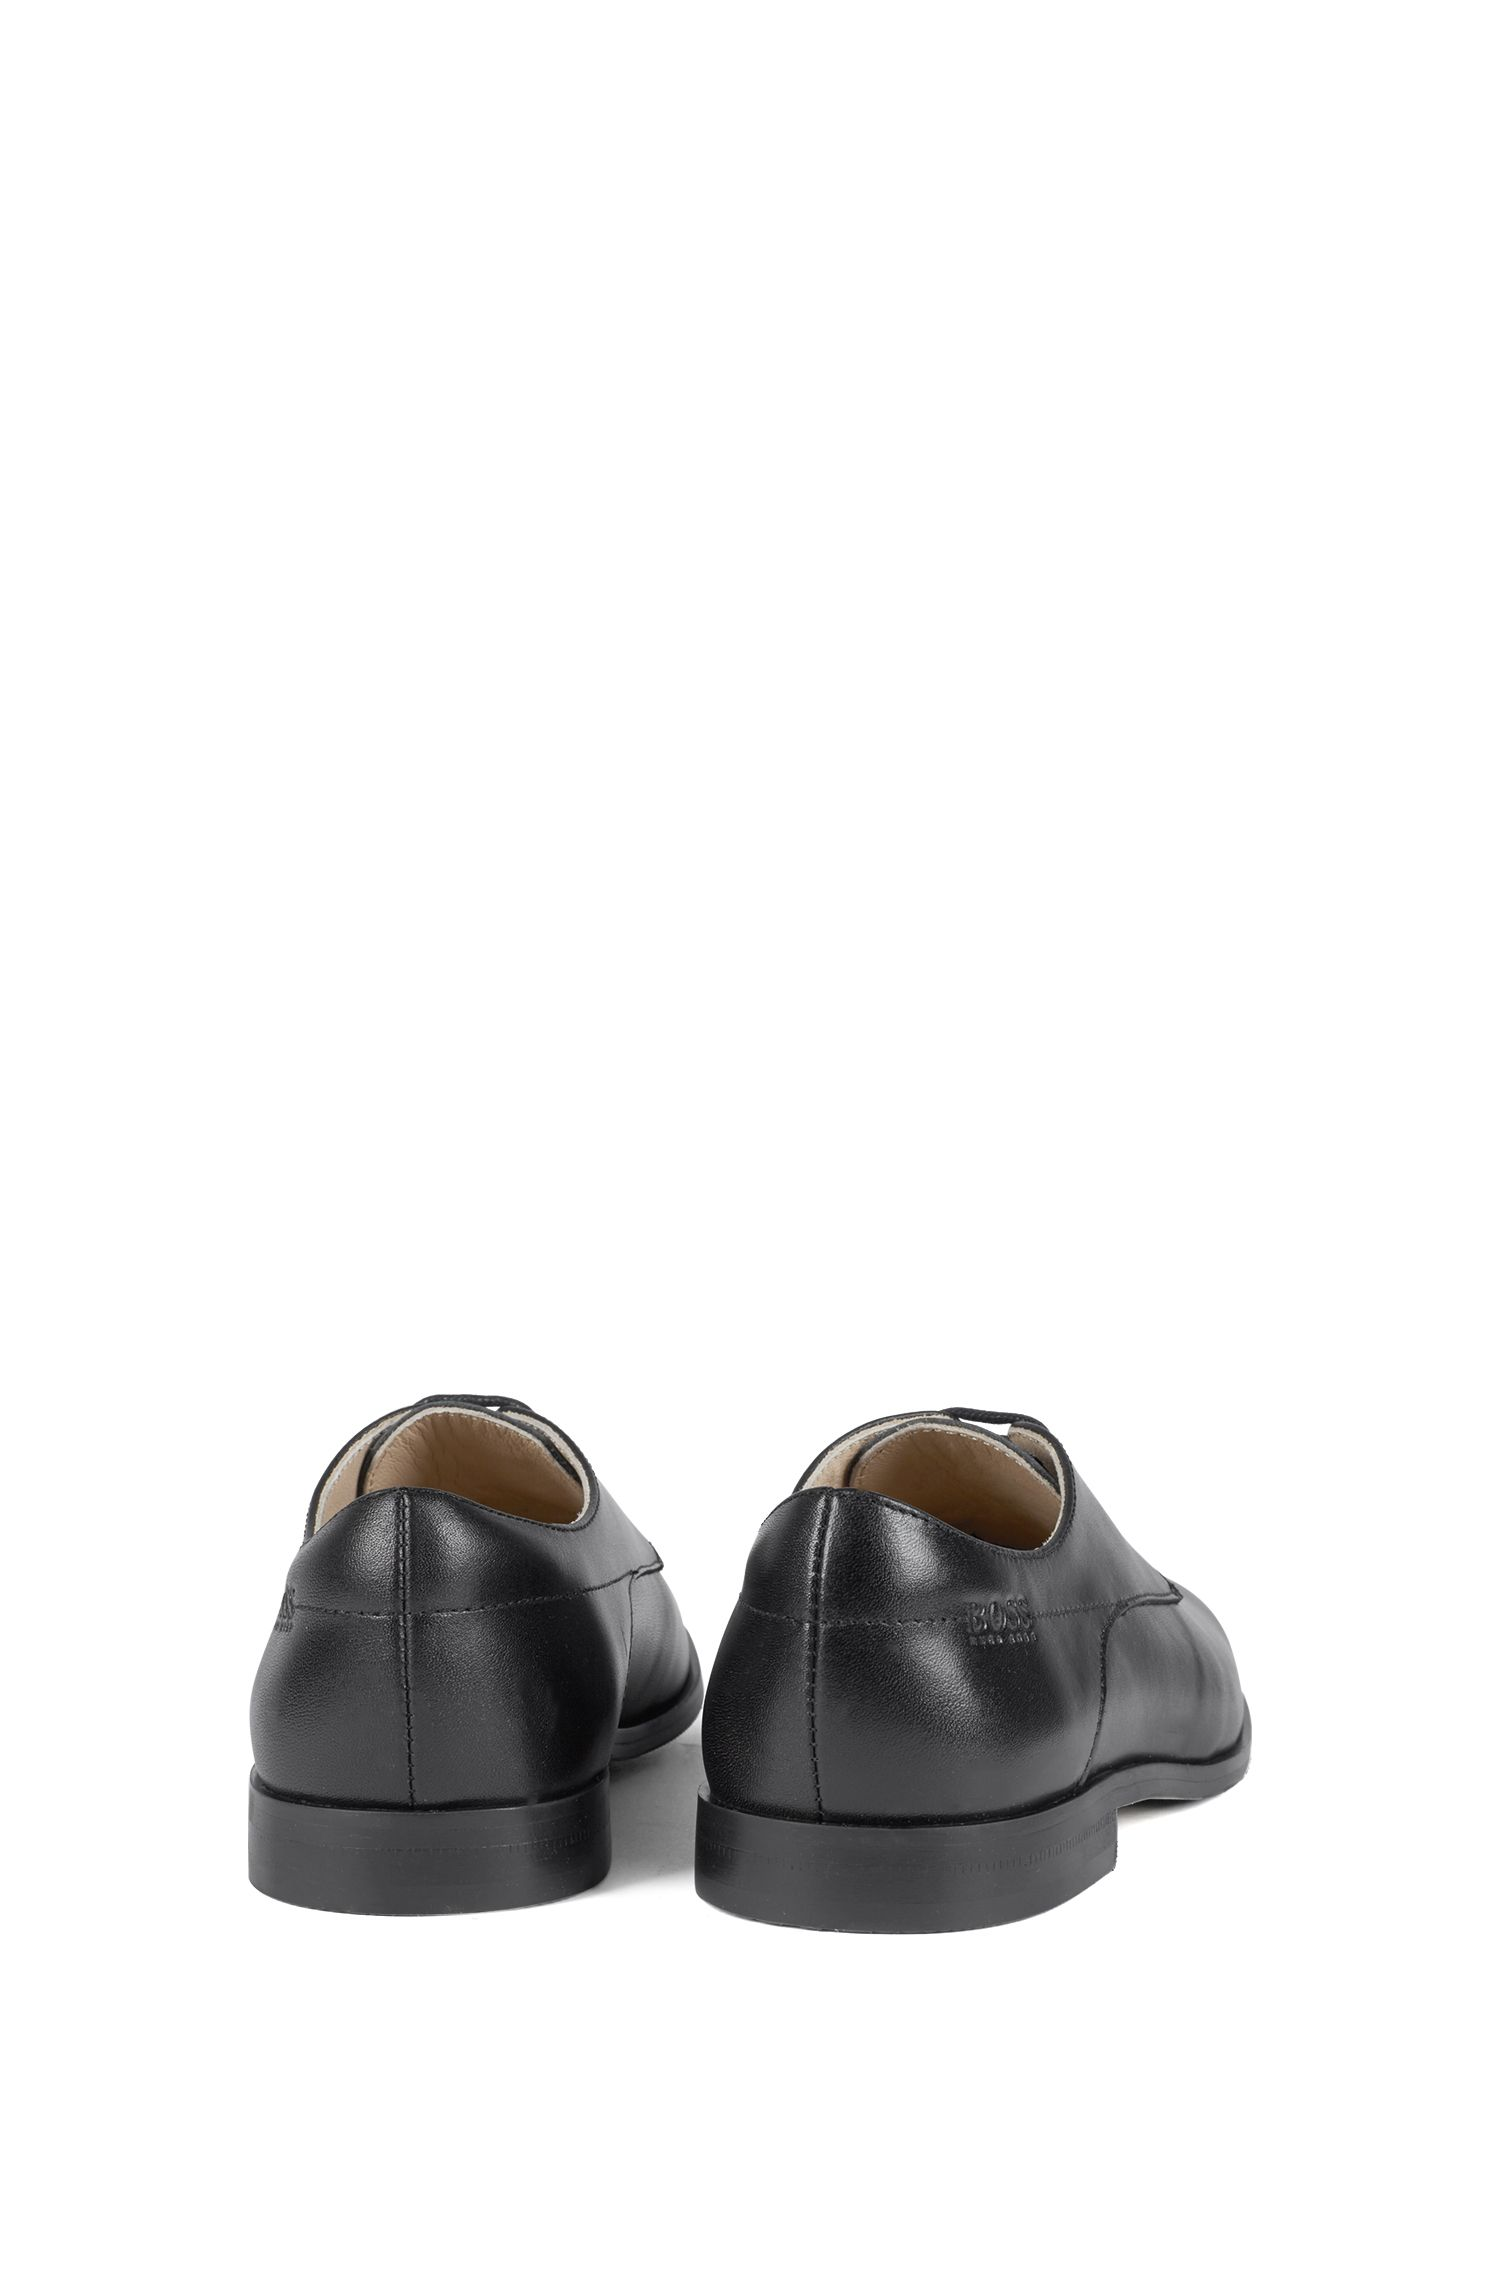 Kids' Derby shoes in smooth leather, Black